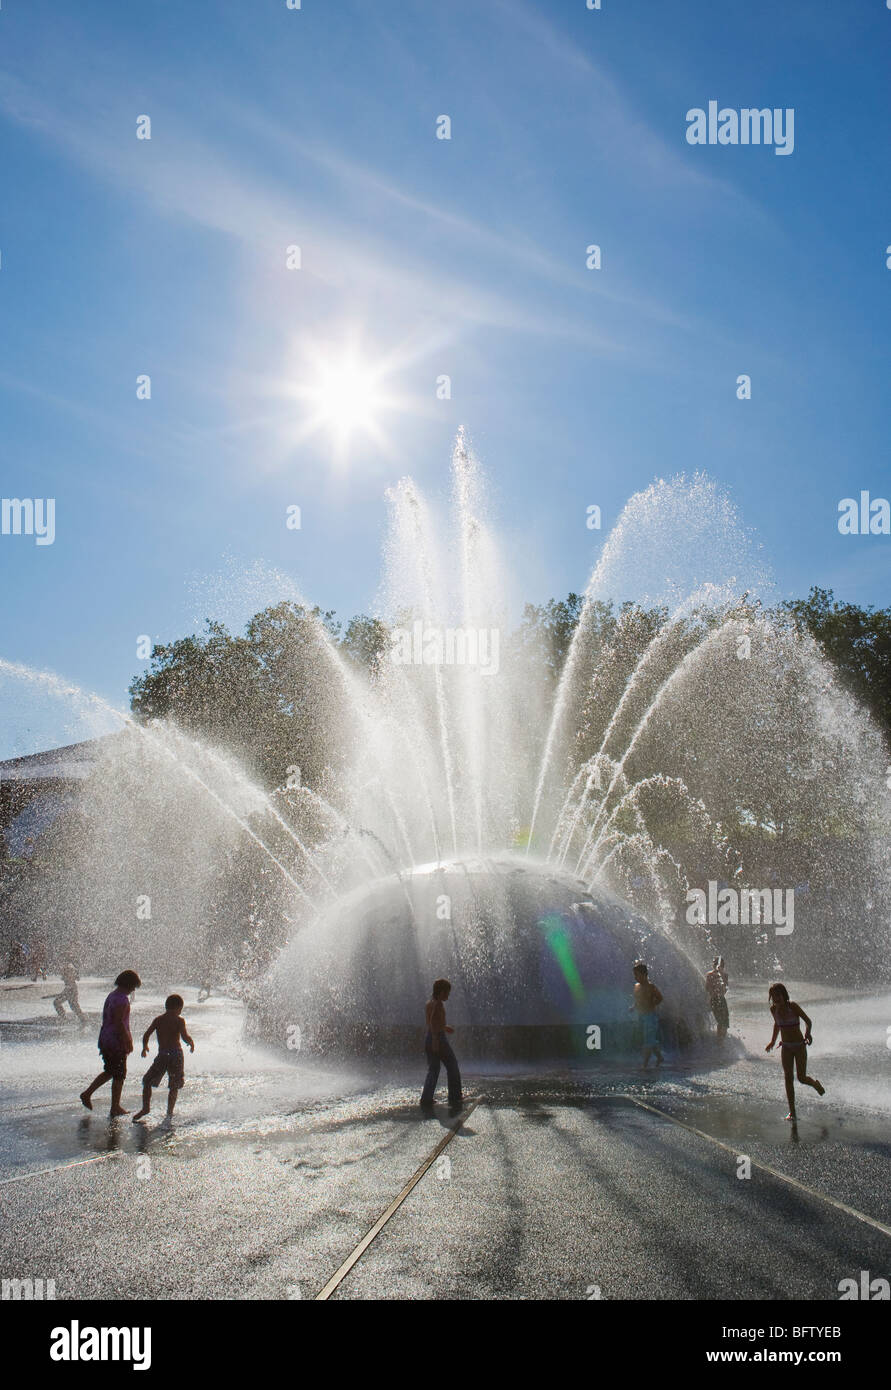 People playing in and around The International Fountain in the Seattle center, Seattle, WA, USA. Stock Photo